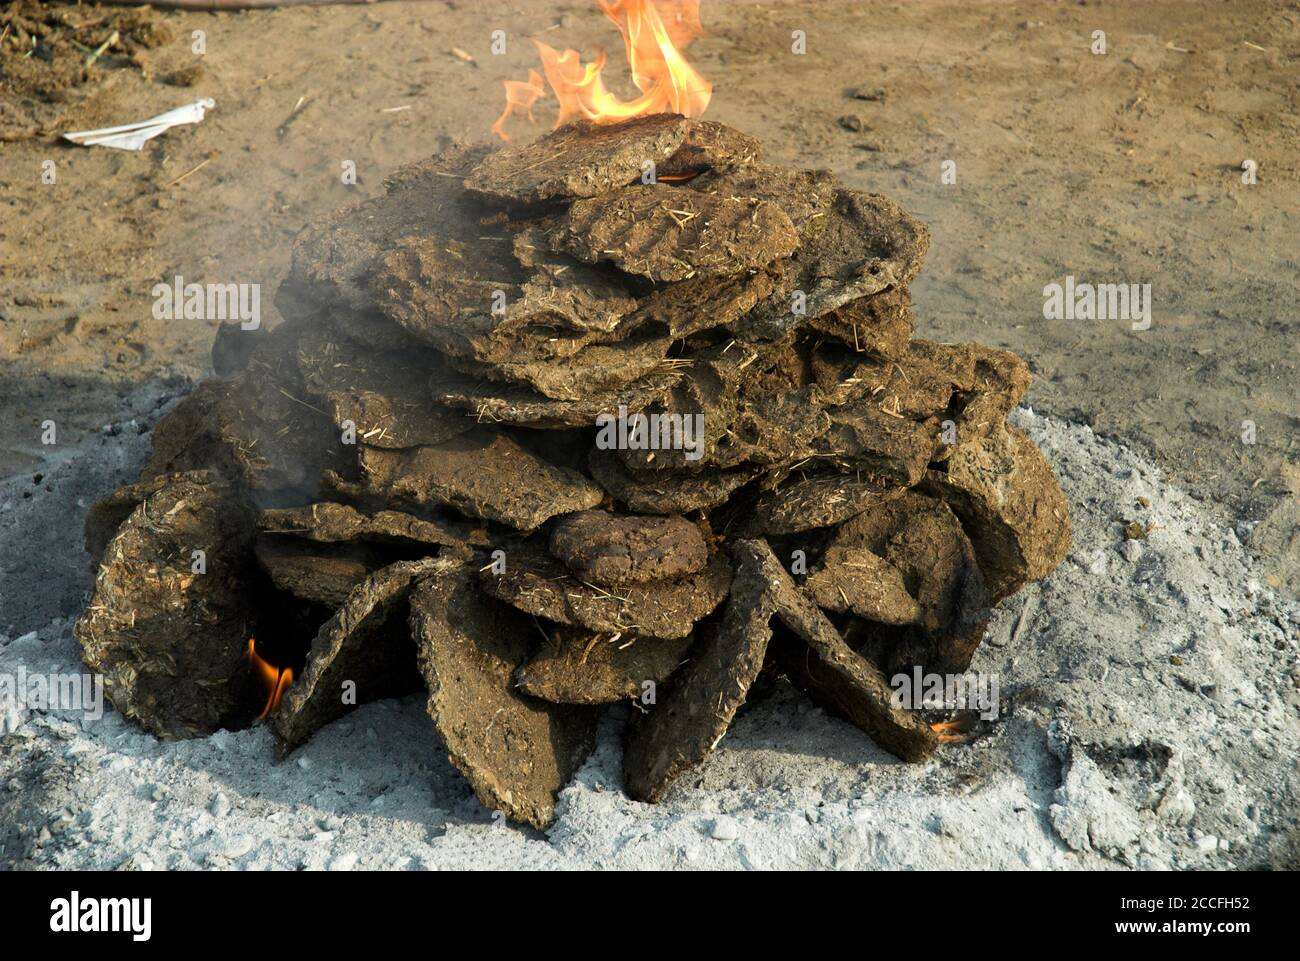 """Hand-moulded """"dung cakes"""" are traditionally used as fuel in India for cooking food, as seen here at the Pushkar Camel Fair in Rajasthan Stock Photo"""